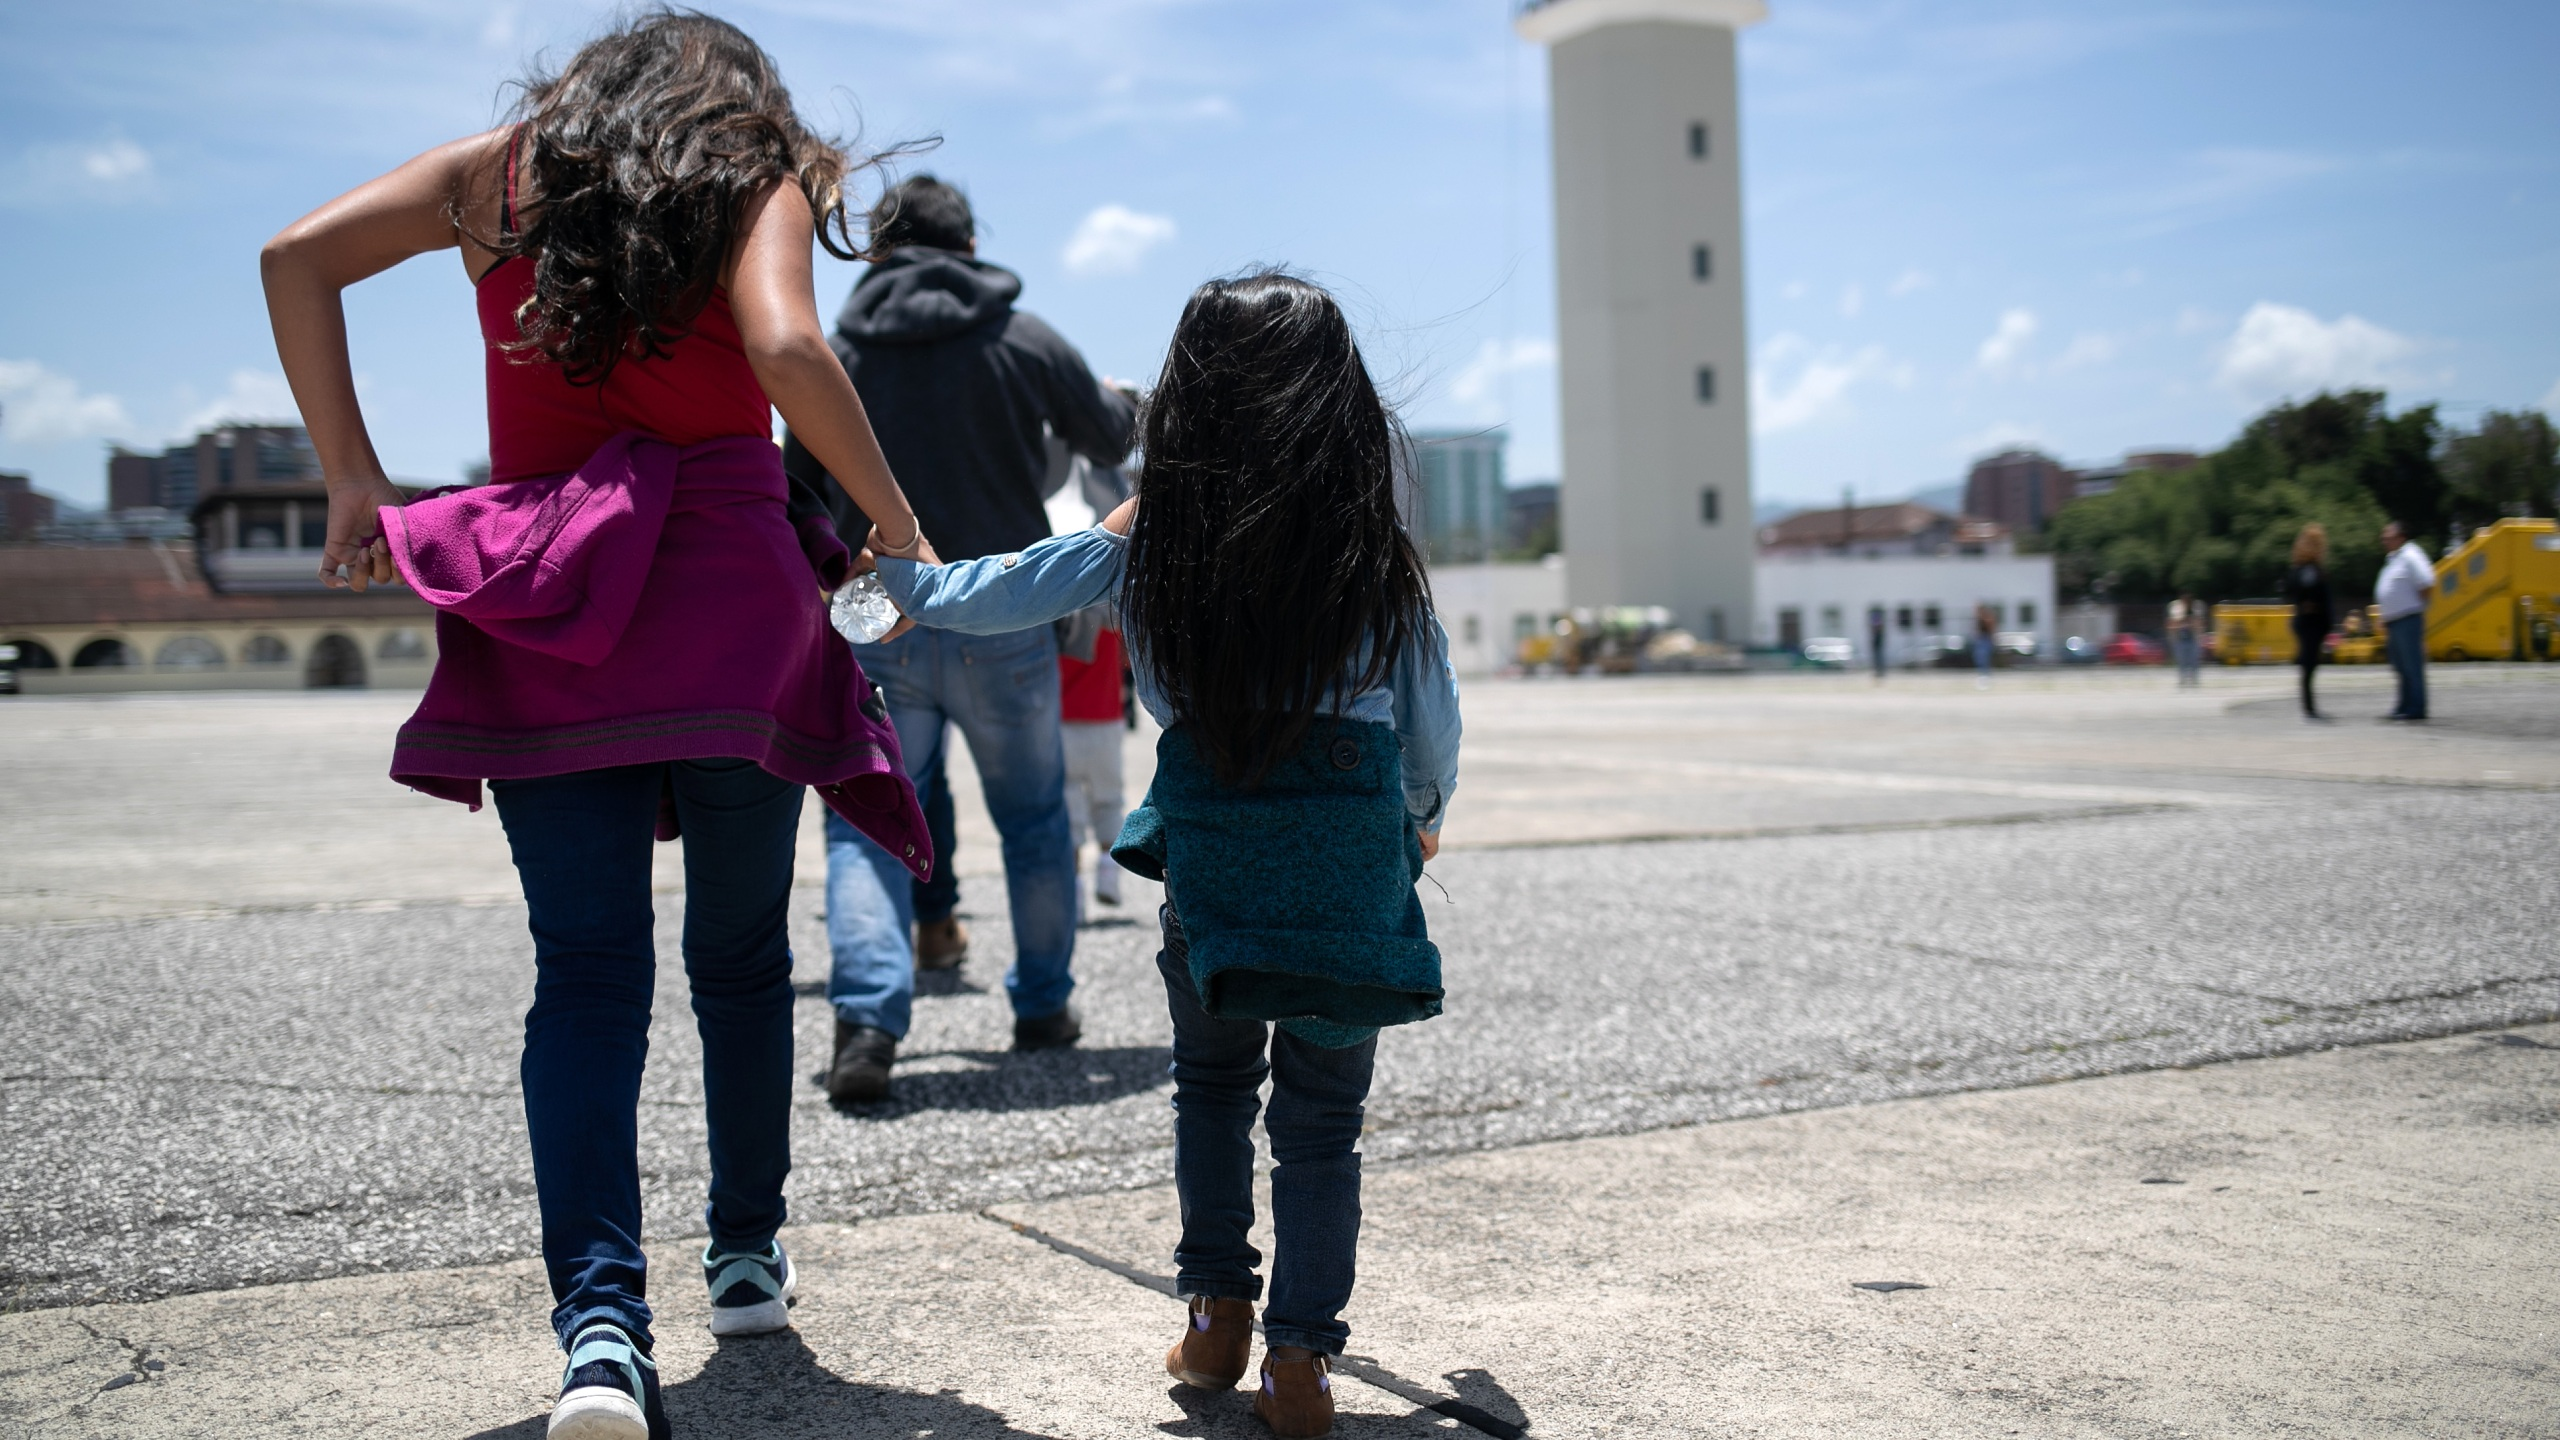 Guatemalan youth arrive on an ICE deportation flight from Brownsville, Texas, to Guatemala City on Aug. 29, 2019. (John Moore / Getty Images)